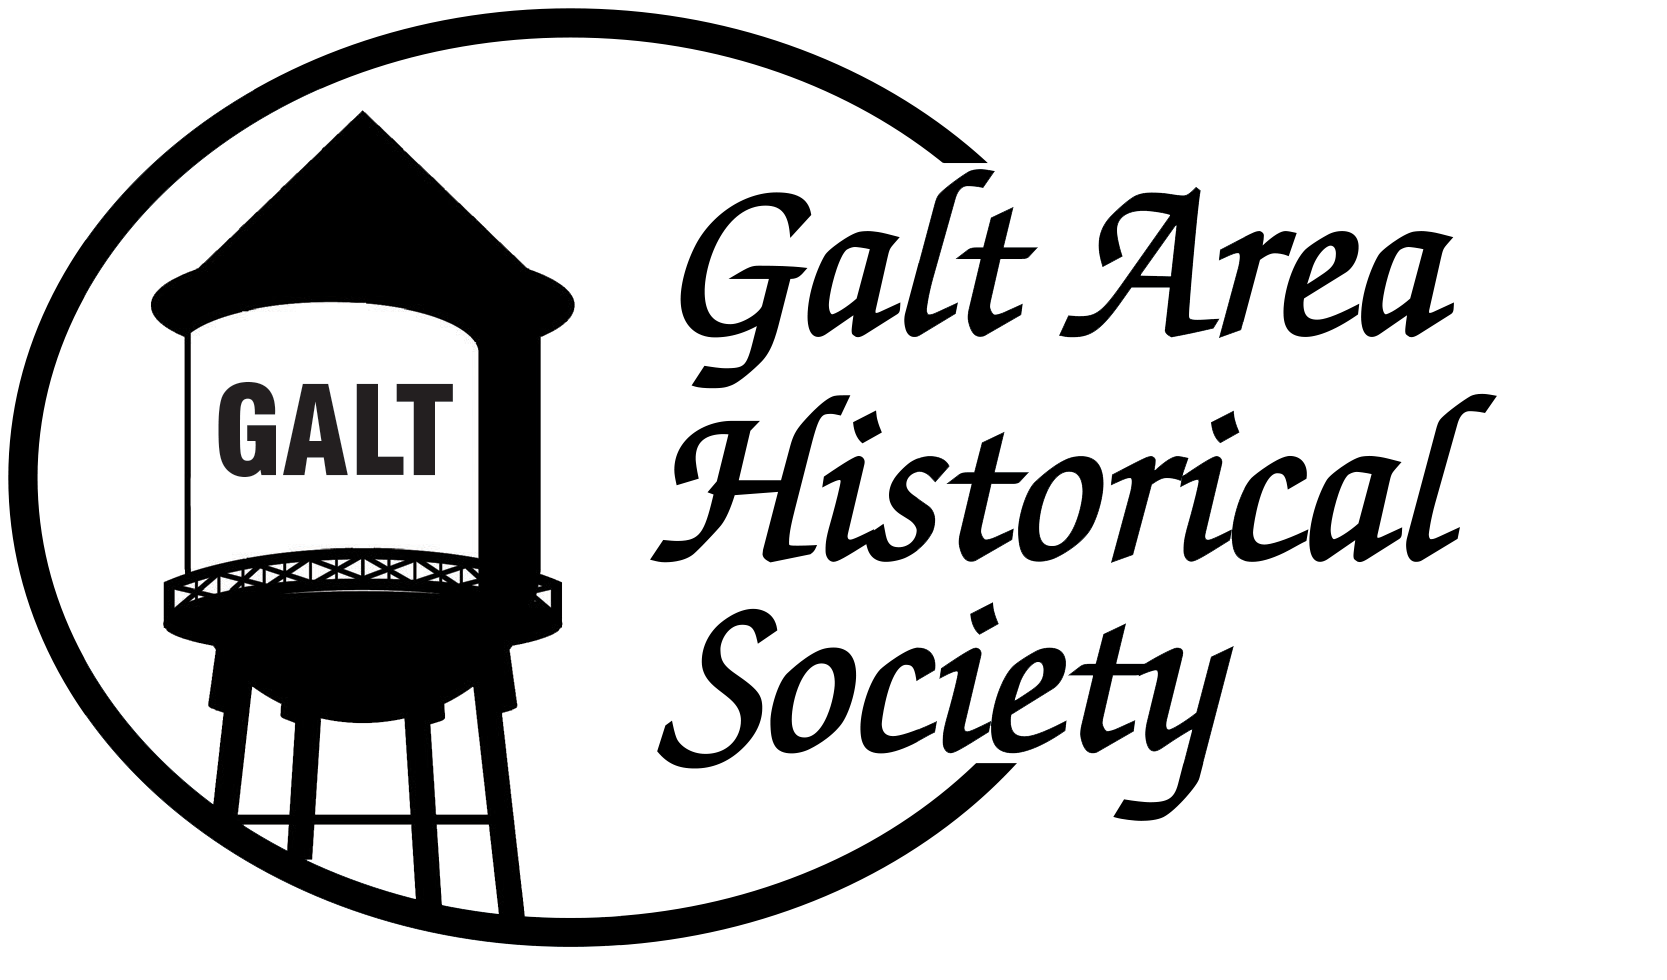 Galt Area Historical Society logo with drawing of the Galt Water Tower inside a circle